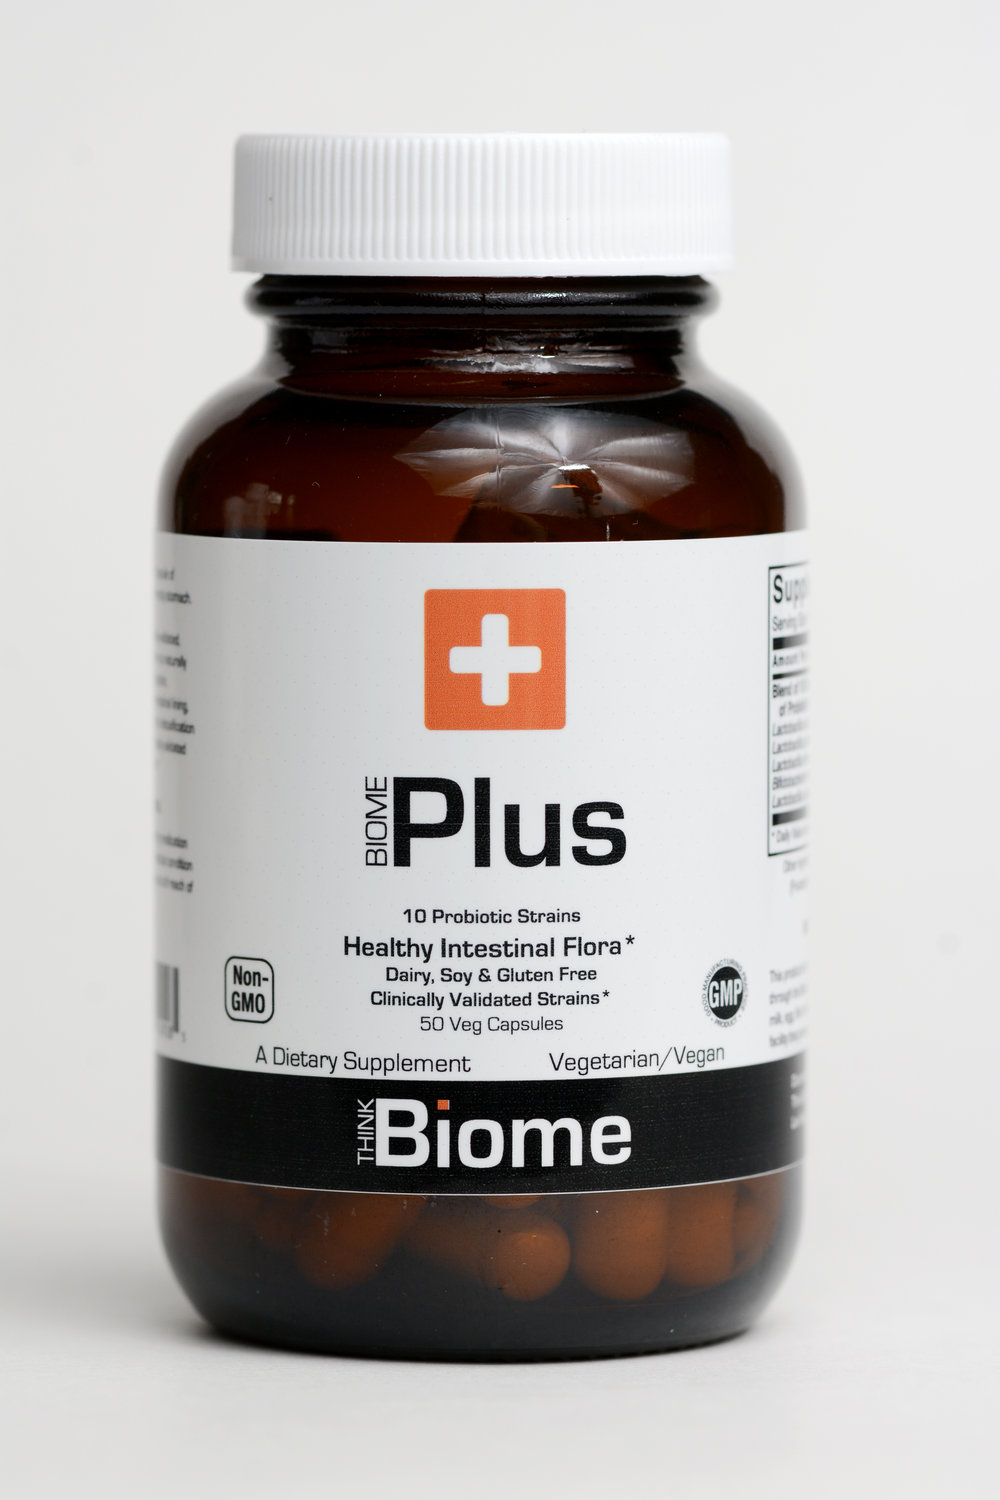 Biome Plus Probiotic - Biome Plus is an ultra-potent, hypoallergenic blend of ten certified probiotic strains formulated to provide 50 billion CFUs in a single capsule. Biome Plus provides a balanced spectrum of live organisms, consisting of acid-resistant probiotic bacterial strains that naturally colonize the human gastrointestinal tract. Probiotic bacteria are critical for healthy digestion, help maintain the integrity of the intestinal lining, support proper intestinal motility and participate in the detoxification process*. The bacterial strains present in Biome Plus have been clinically validated for their support of healthy immune system function*.Refrigeration: You may notice that your probiotic arrives unrefrigerated. Biome Plus is tested extensively and designed to withhold non-refrigeration for approximately 2 months without affecting the quality or quantity of live bacteria. Biome Plus probiotic is refrigerated up until the day of shipment.Suggested UsageAs a dietary supplement take one capsule daily or as directed by a healthcare practitioner.Supplement FactsServing Size:                               1 CapsuleServings Per Container:              50 vegetarian capsulesAmount Per Capsule % Daily ValueProbiotic Blend (50+ billion CFUs) in a base of cellulose:Lactobacillus acidophilus (La-14), Bifidobacterium lactis (BI-04),Lactobacillus plantarum (Lp-115), Bifidobacterium lactis (BI-05),Lactobacillus rhamnosus (Lr-32), Strepto. thermophilus (St-21),Lactobacillus paracasei (Lp-37), Bifidobacterium breve (Bb-03),Lactobacillus salivarius (lS-33), Lactobacillus casei (Lc-11).DetailsOther Ingredients: Cellulose Powder, Cellulose (capsule), FOS (Fructooligosaccharides), Ascorbyl Palmitate and Silica.Not manufactured with wheat, gluten, soy, milk, egg, fish, shellfish or tree nut ingredients. Produced in a GMP facility that processes other ingredients containing these allergens.This product is formulated to deliver a potency of 50 Billion Organisms through the Best By date.Caution: Consult physician if pregnant/nursing, taking medication, or have a medical condition. Keep out of reach of children.